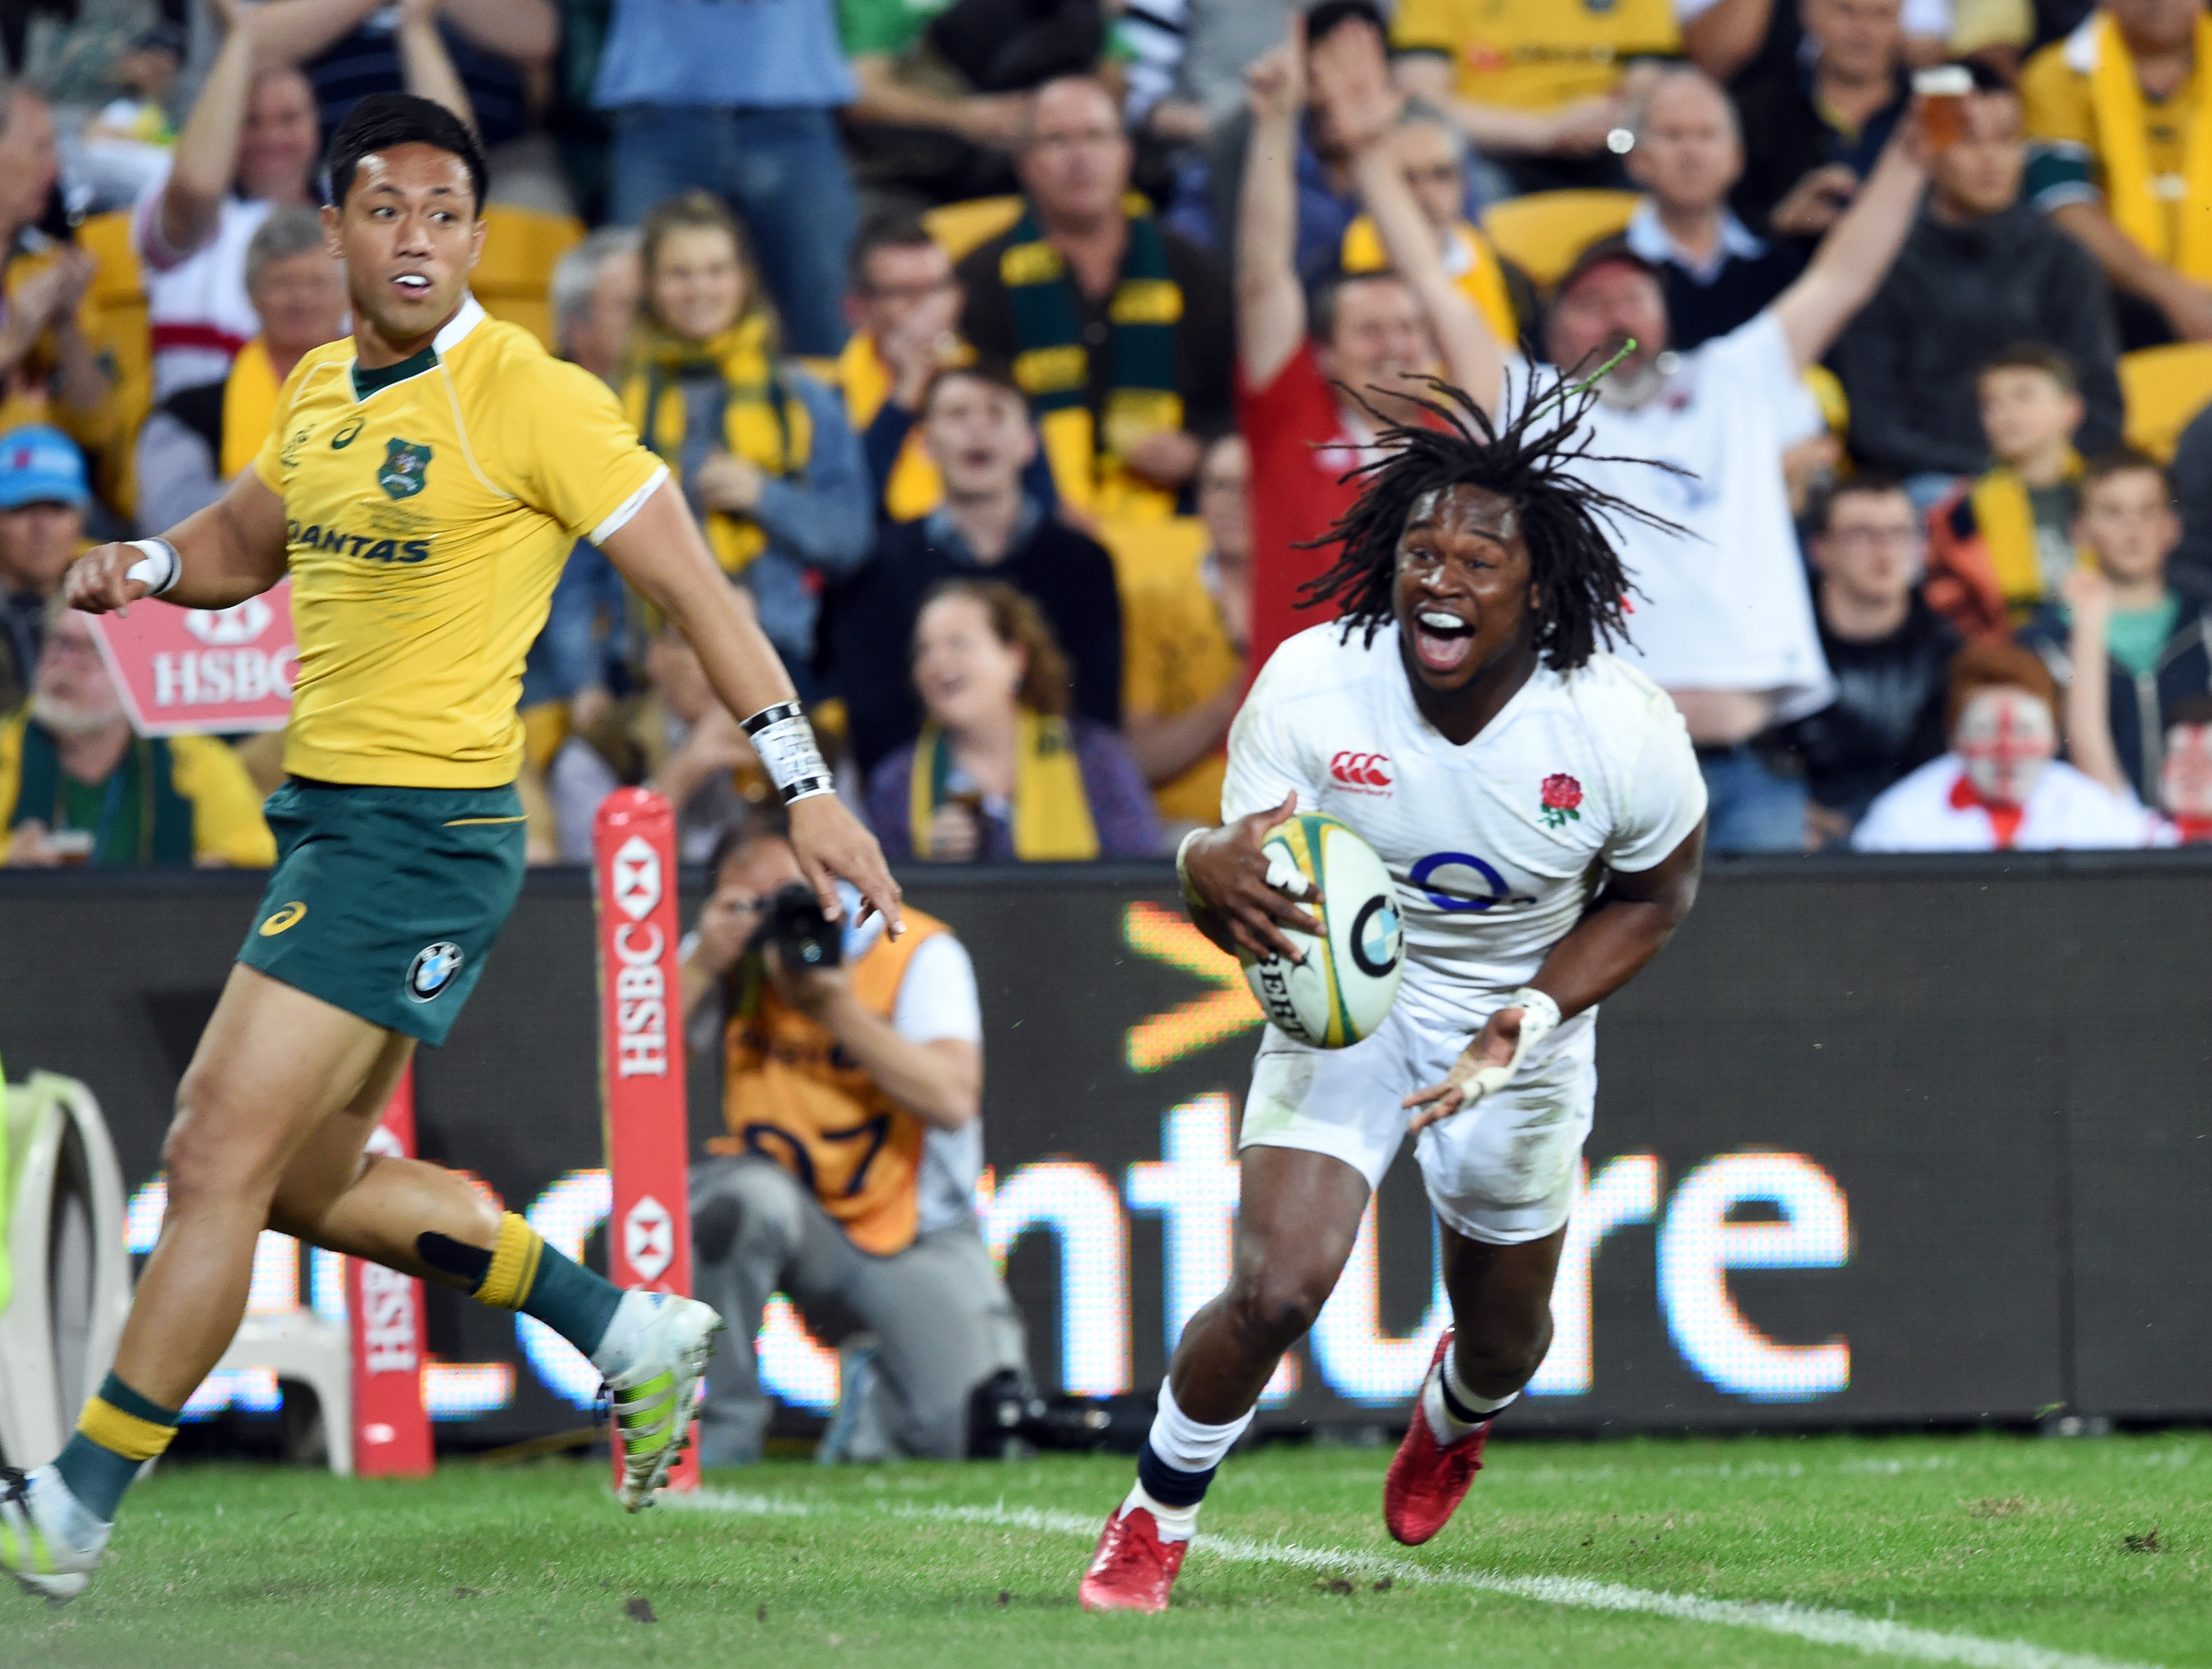 England rugby team beat Australia 39-28 in Brisbane for 1-0 lead in three test series